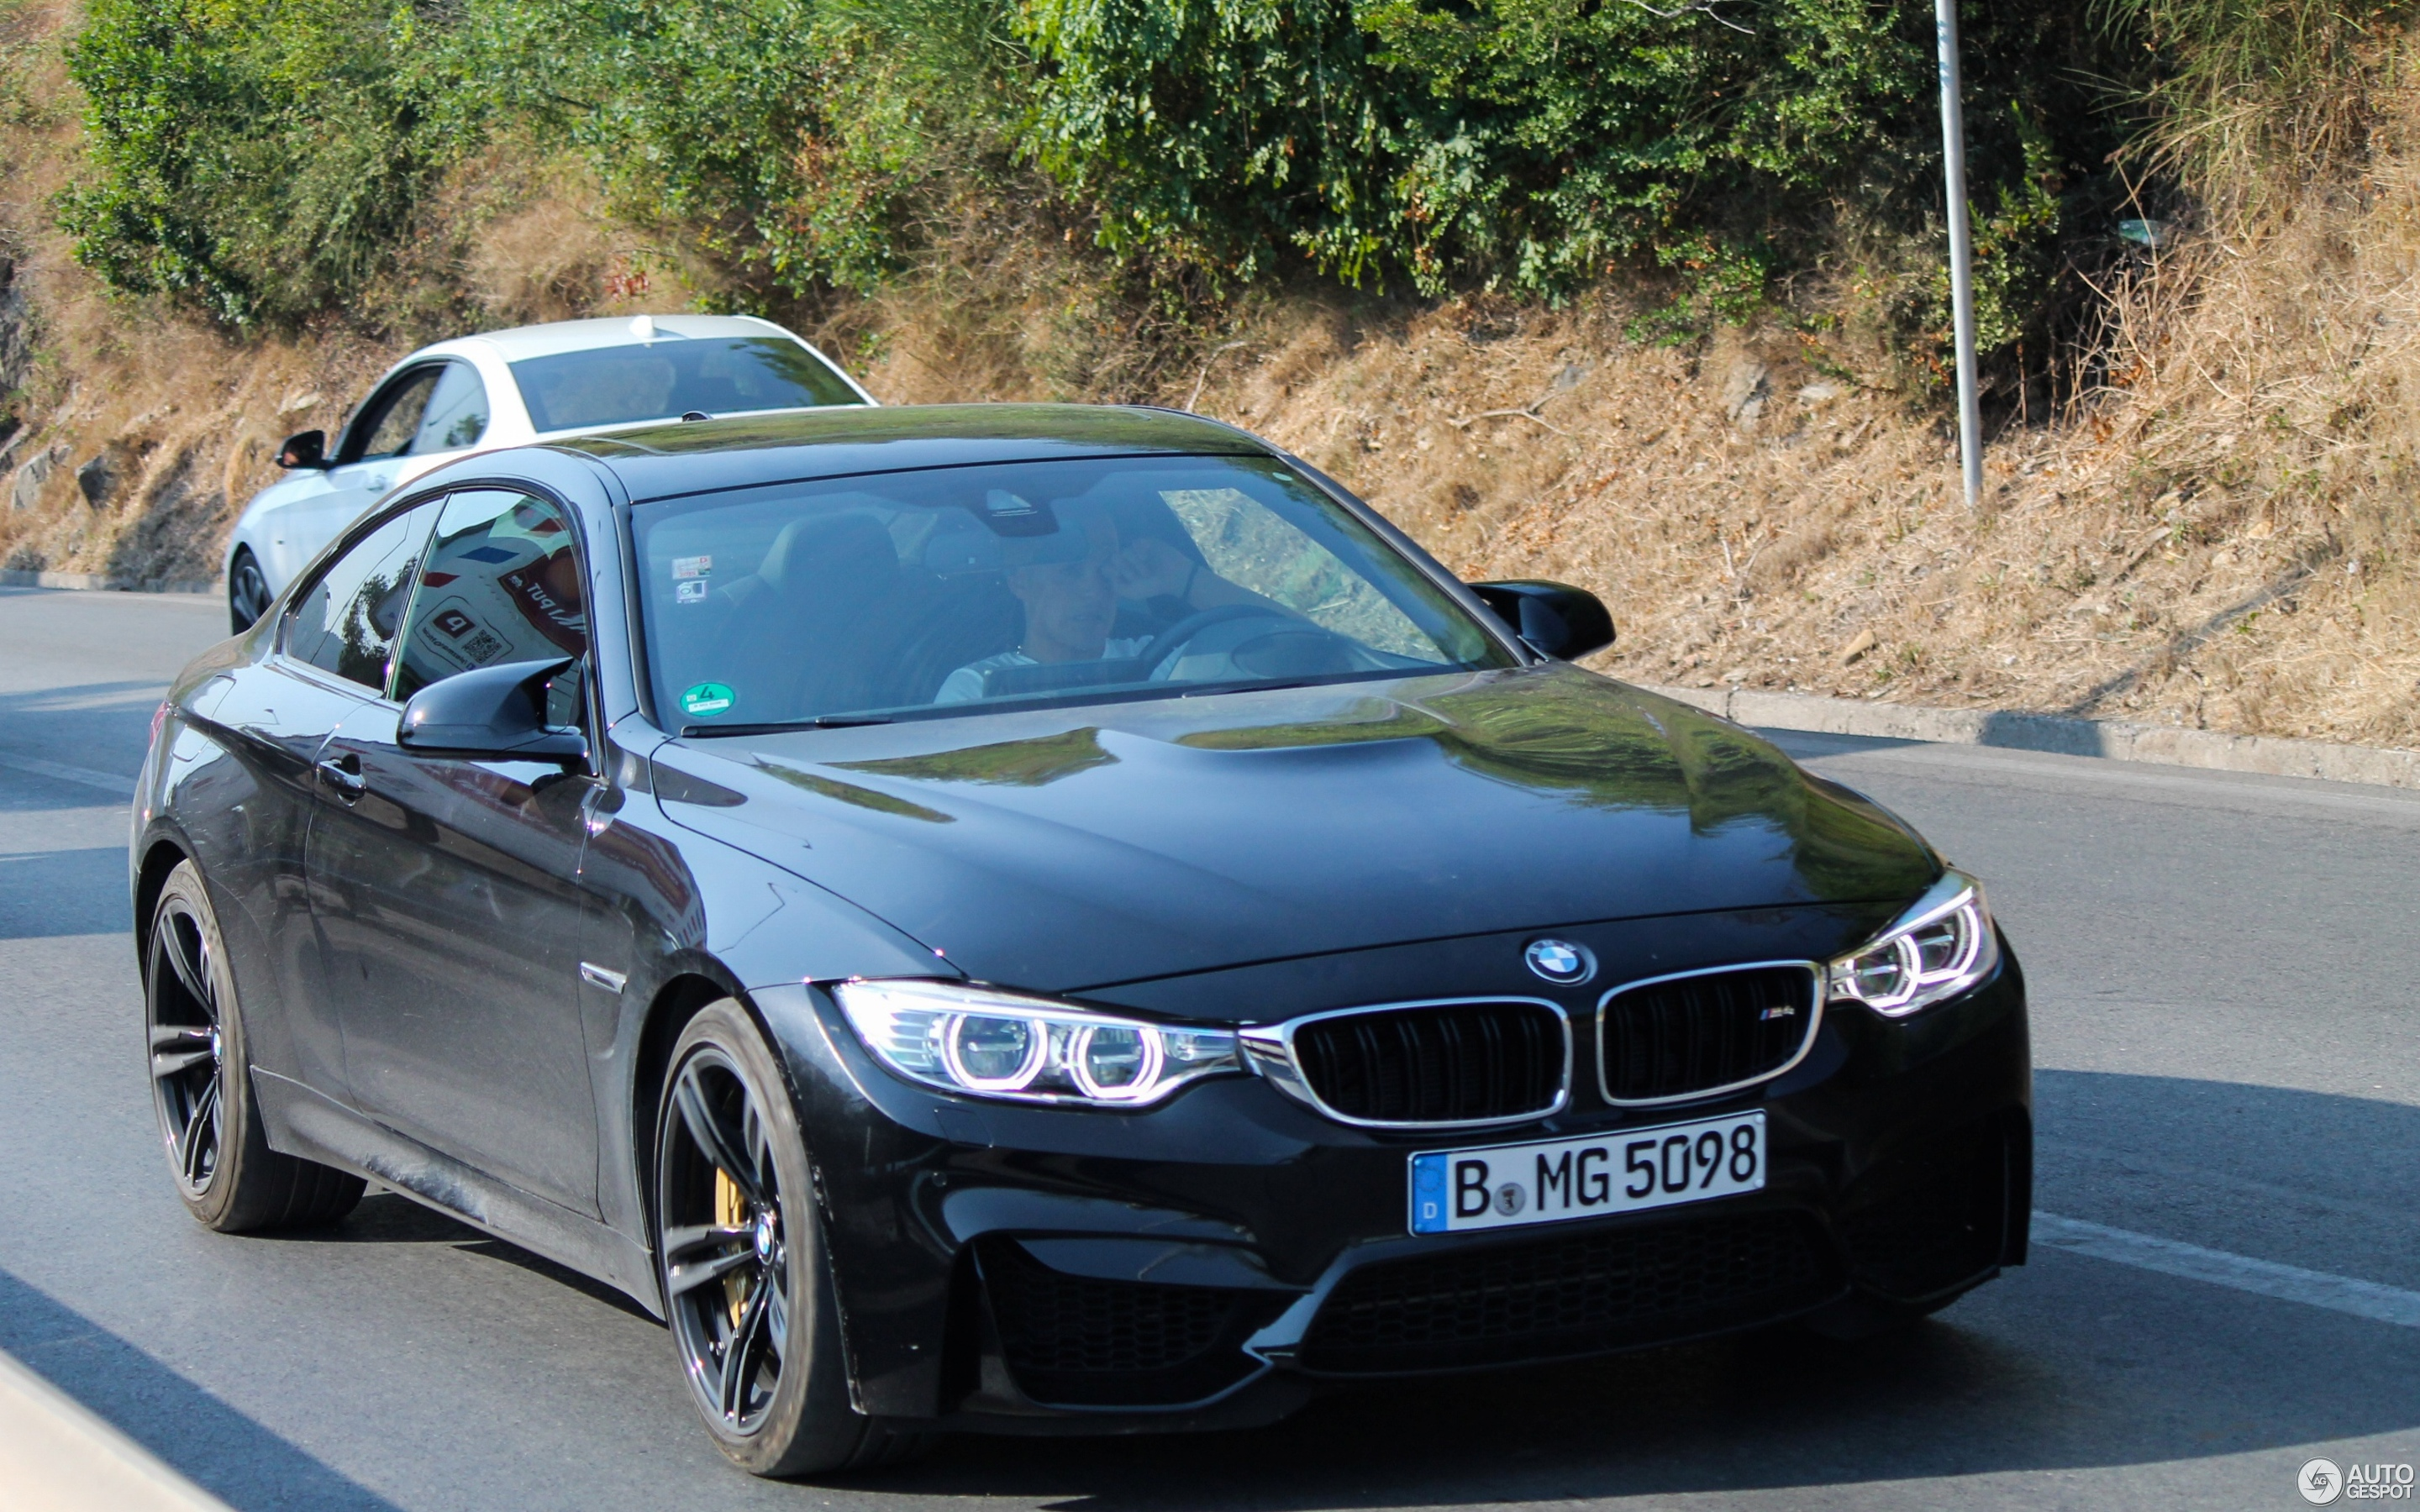 BMW M4 F82 Coupé 9 September 2015 Autogespot